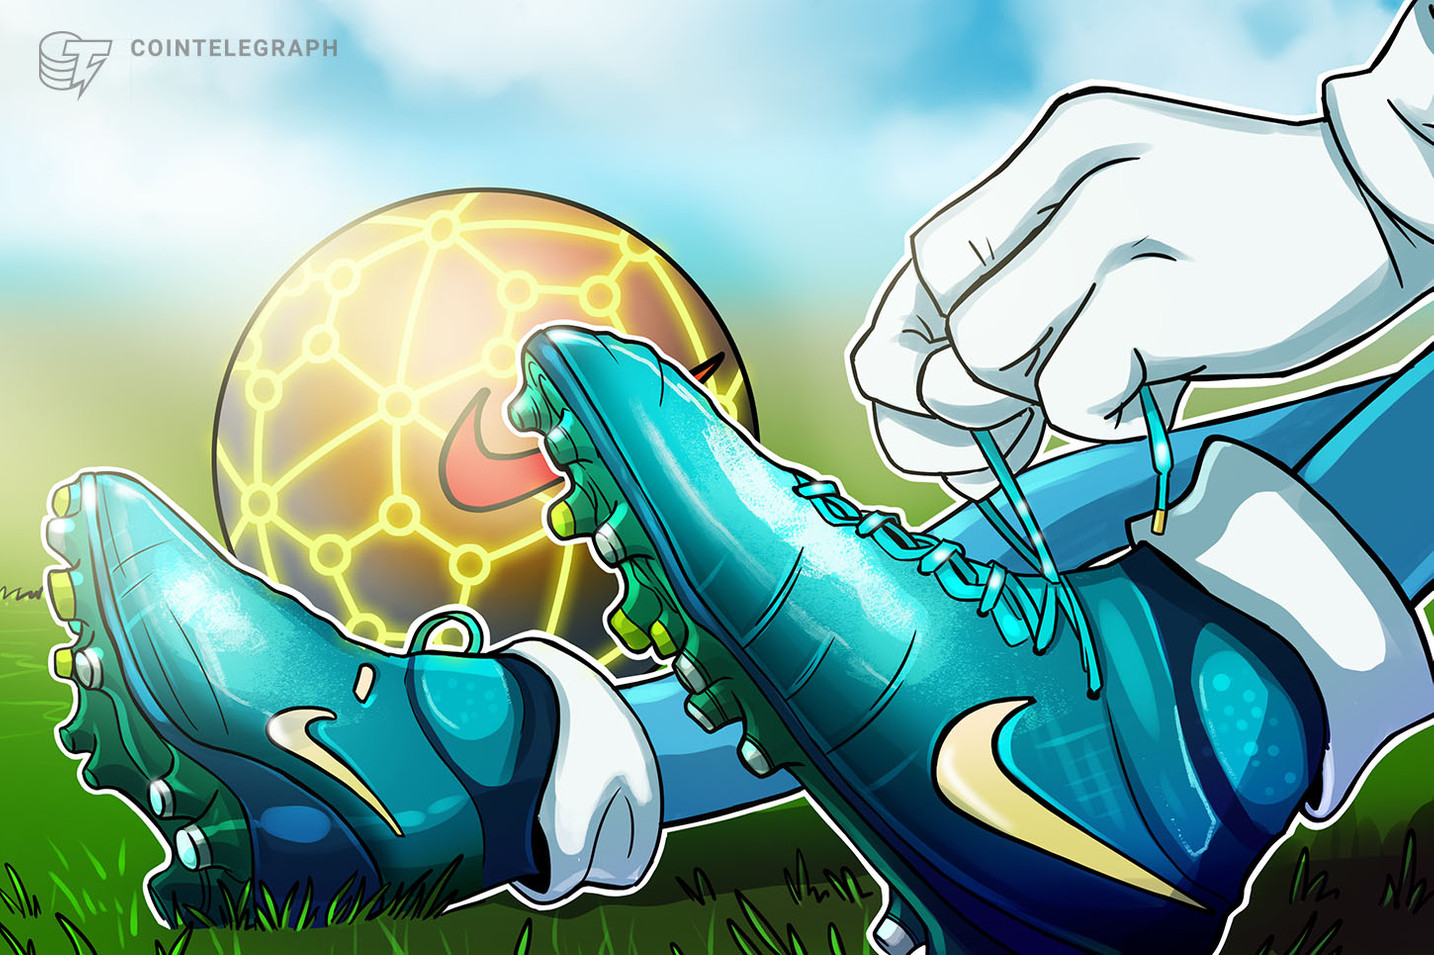 'Cryptokicks': What We Know About Nike's Potential Gateway Into Crypto